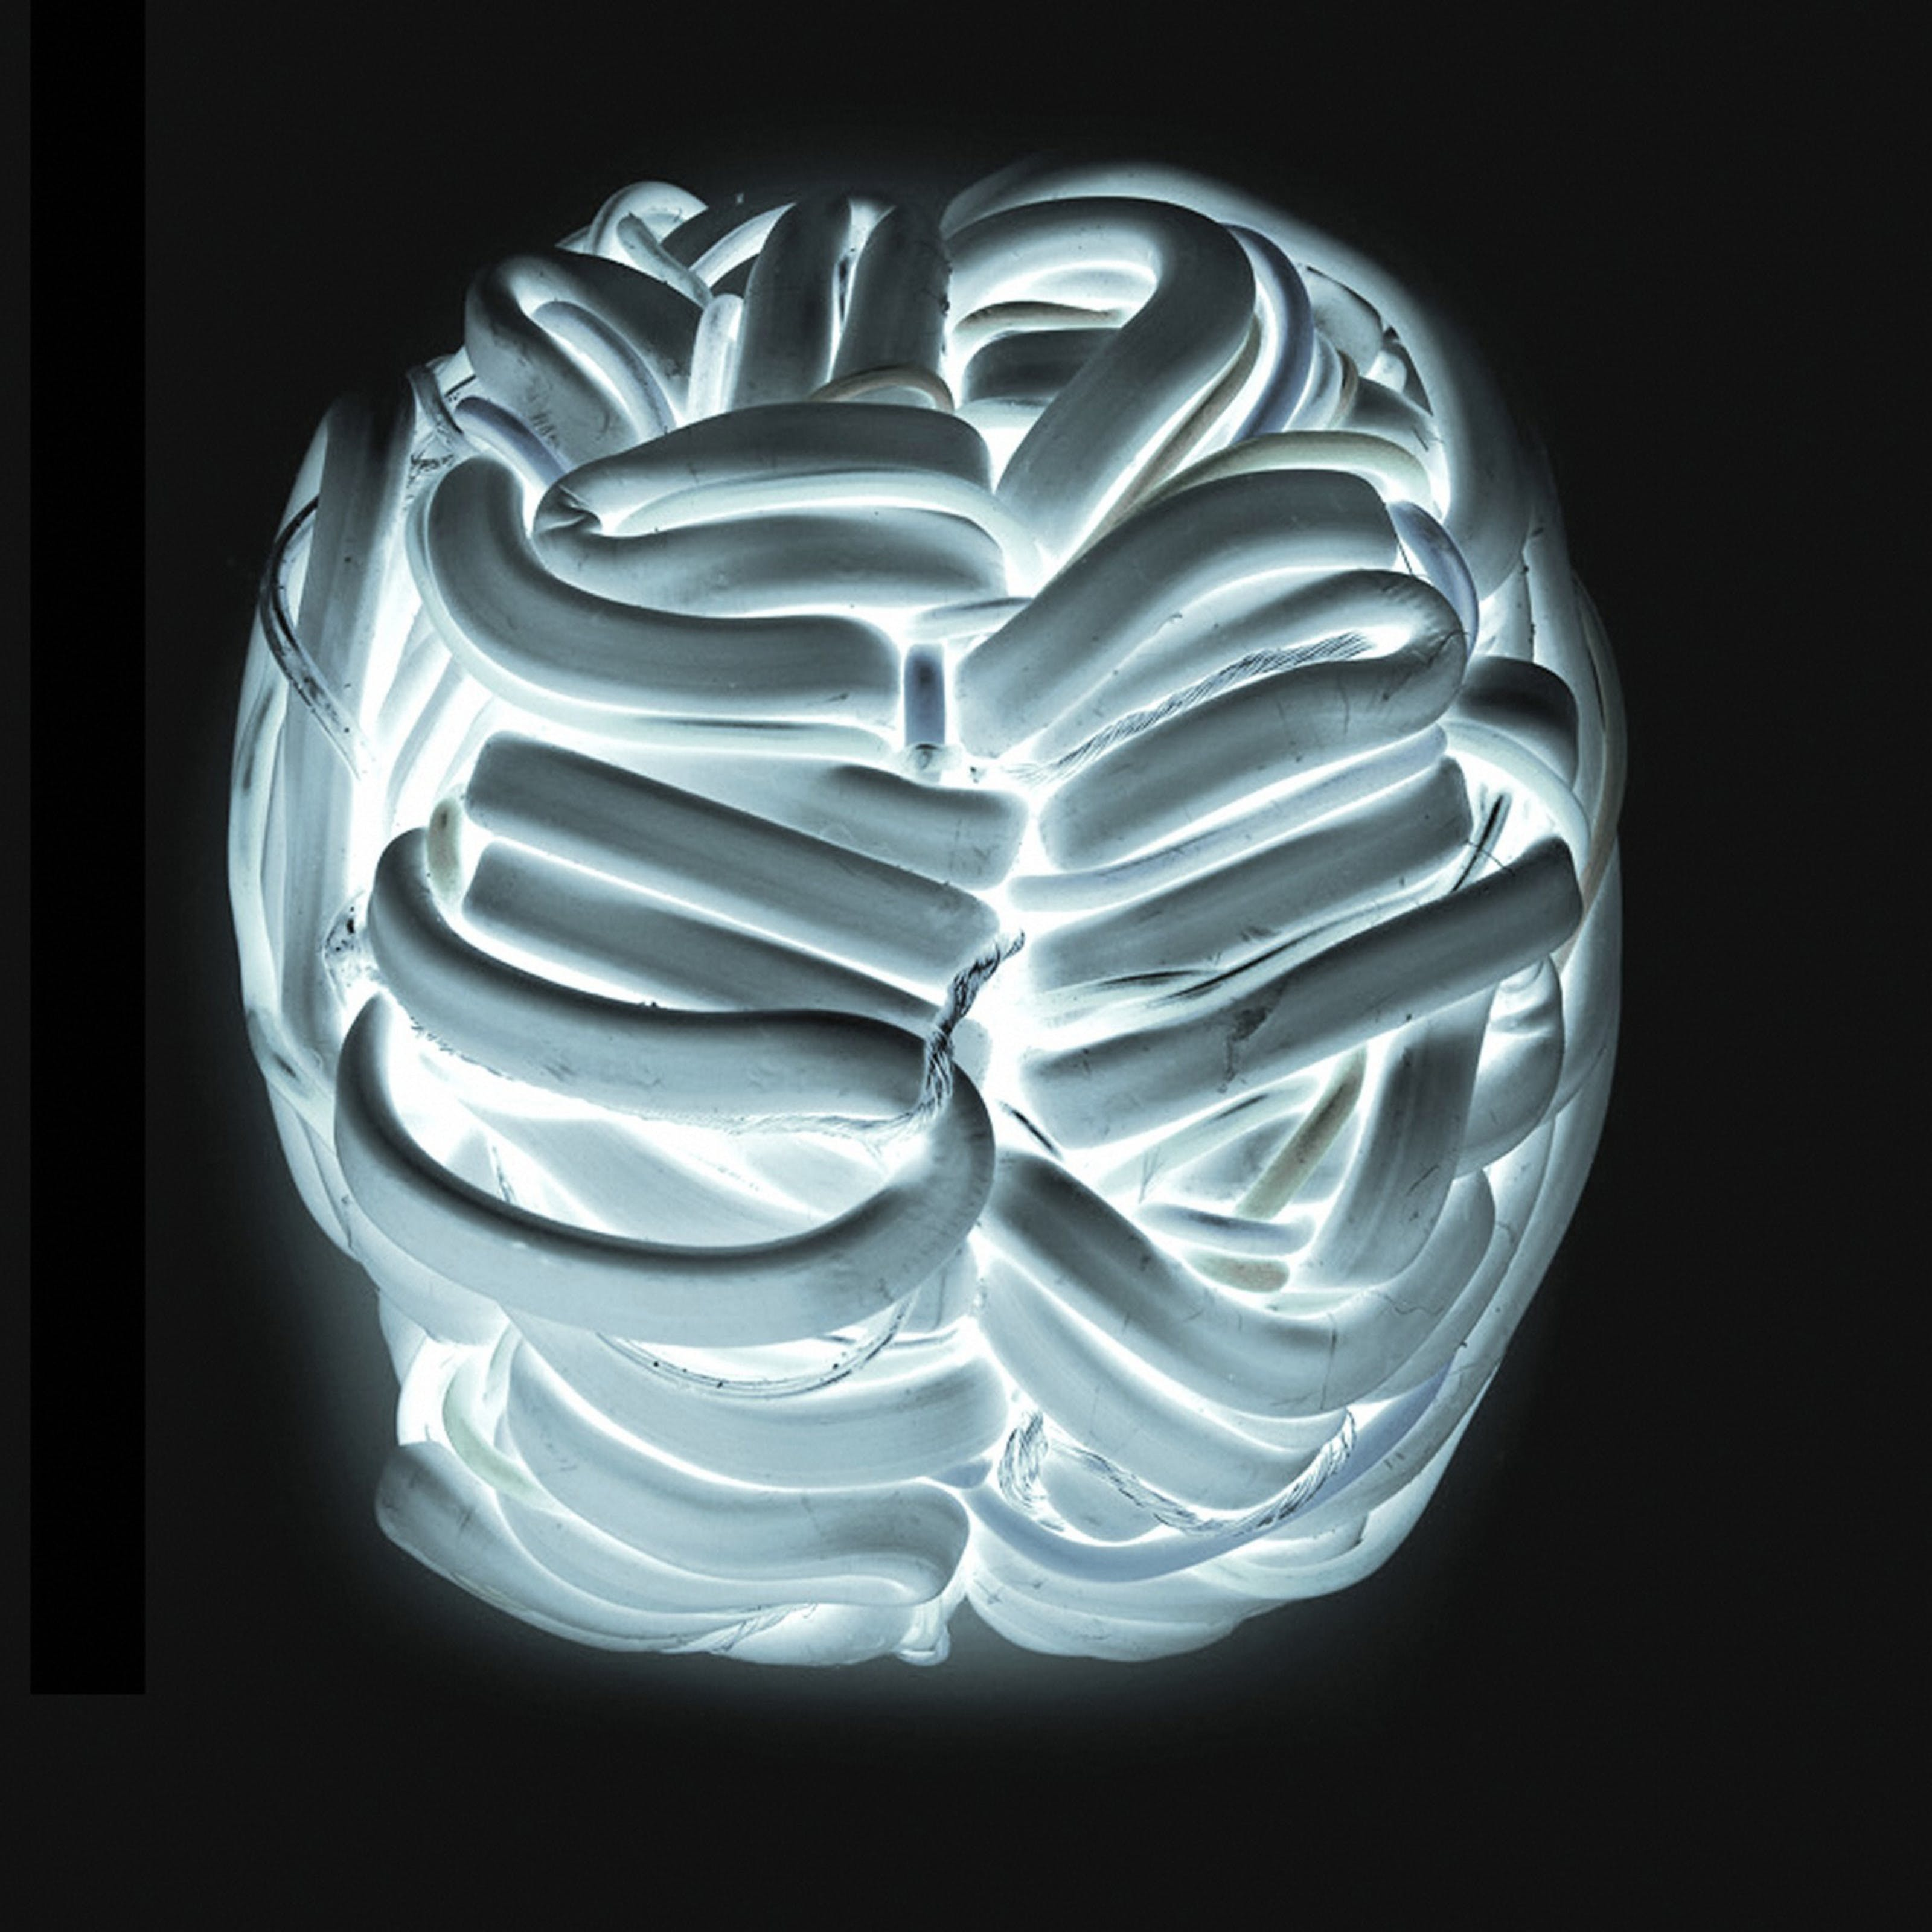 Wires covered in a white polymer twisting and turning to form an artistic representation of the brain